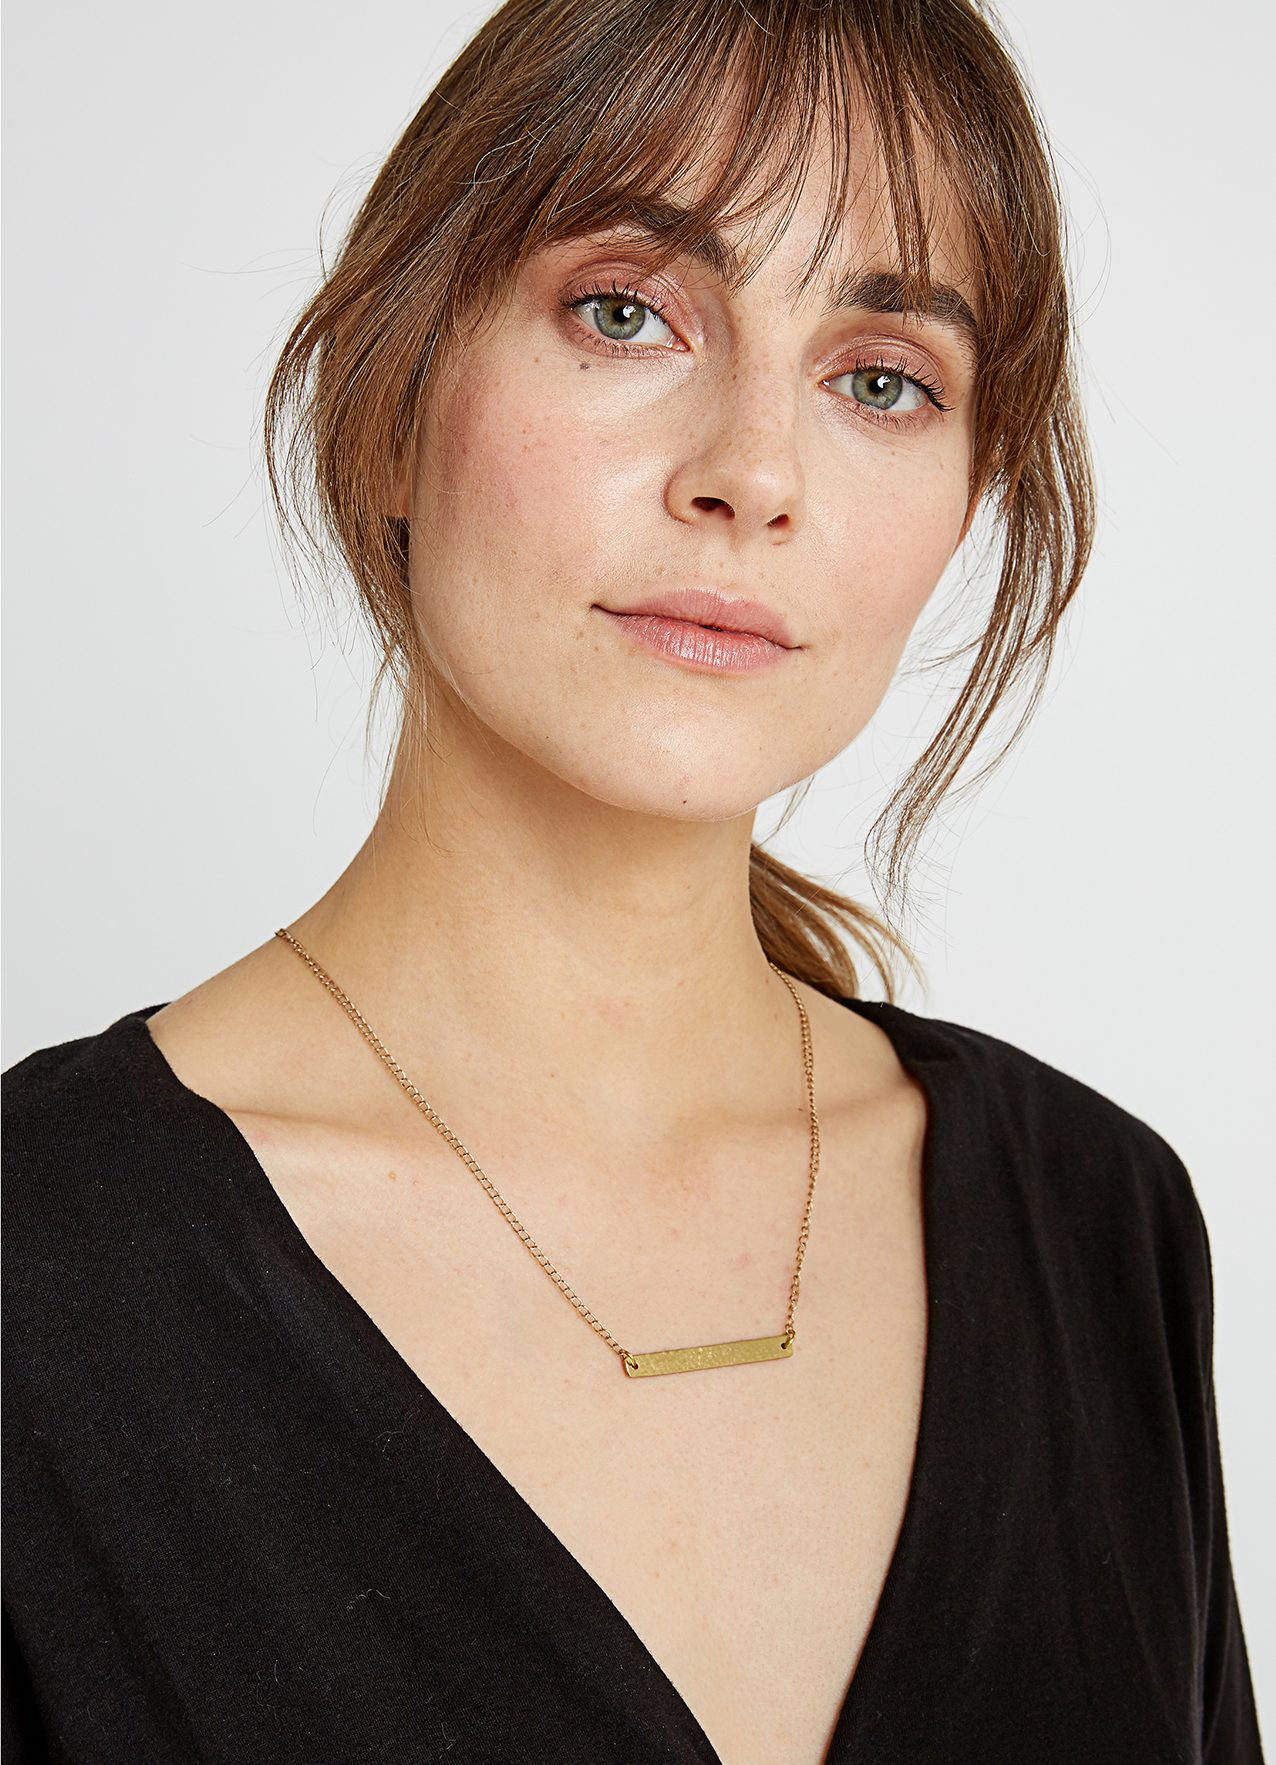 beaten-bar-necklace-in-brass-49c64527e435